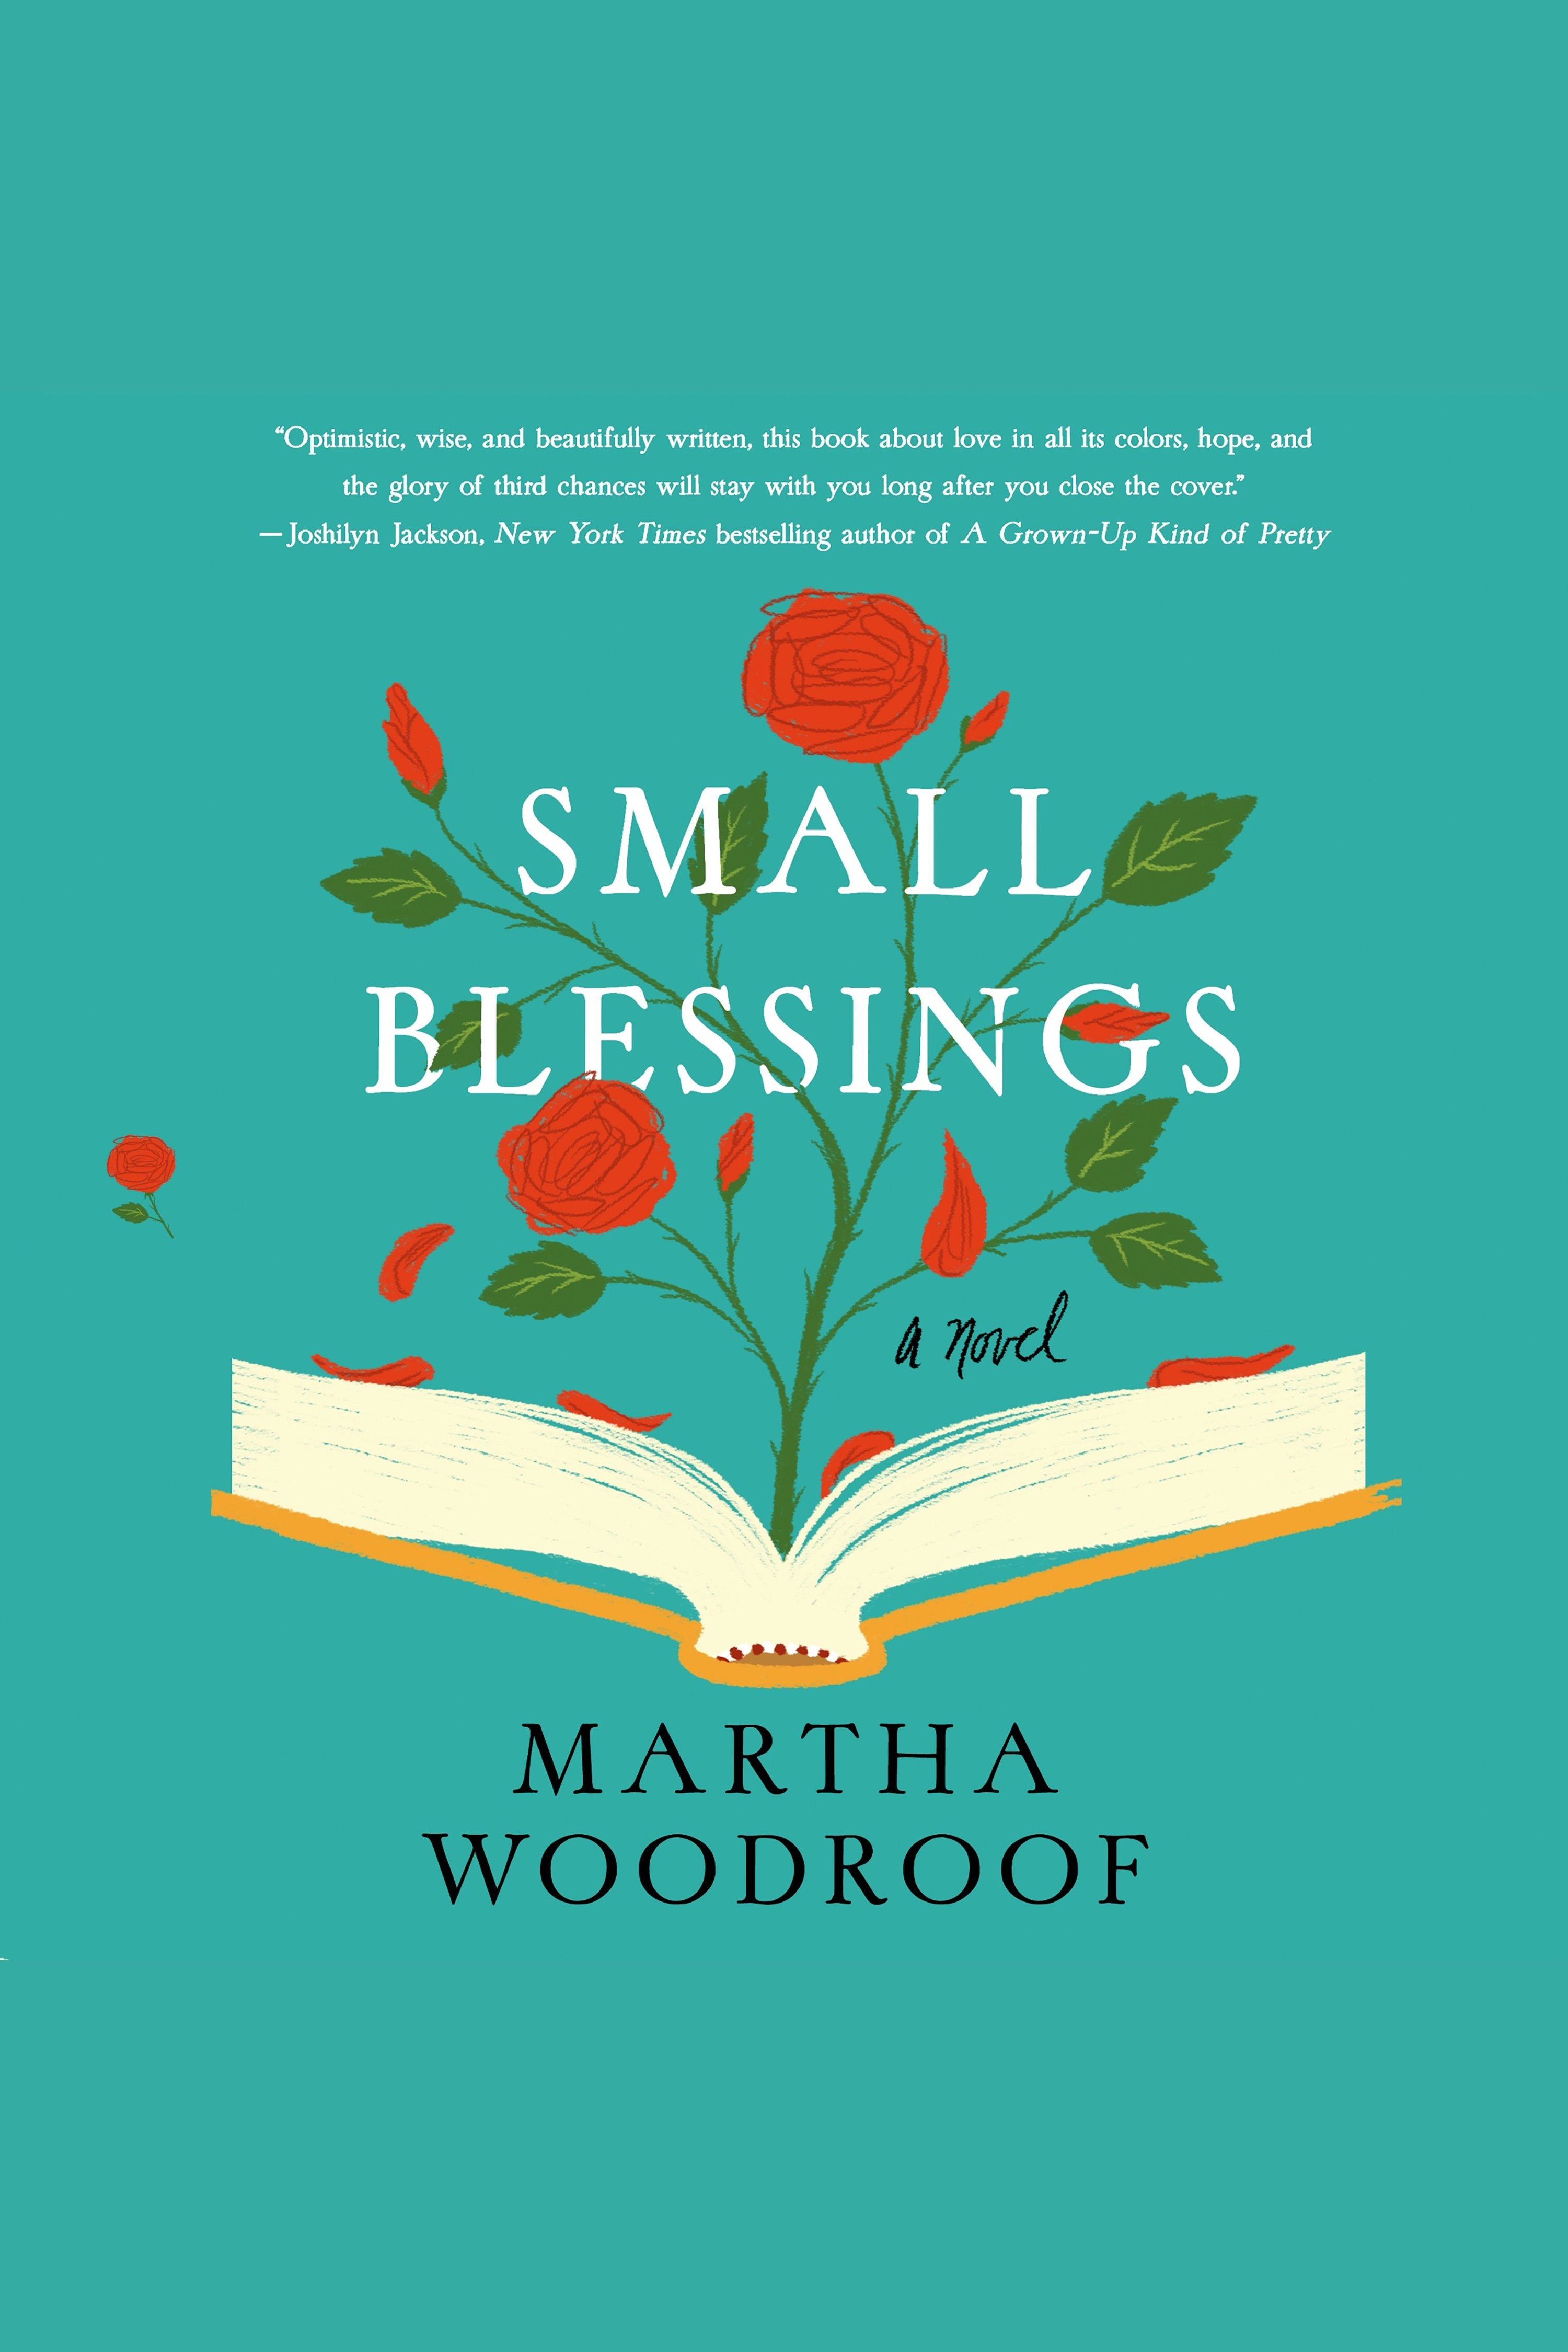 Small blessings cover image